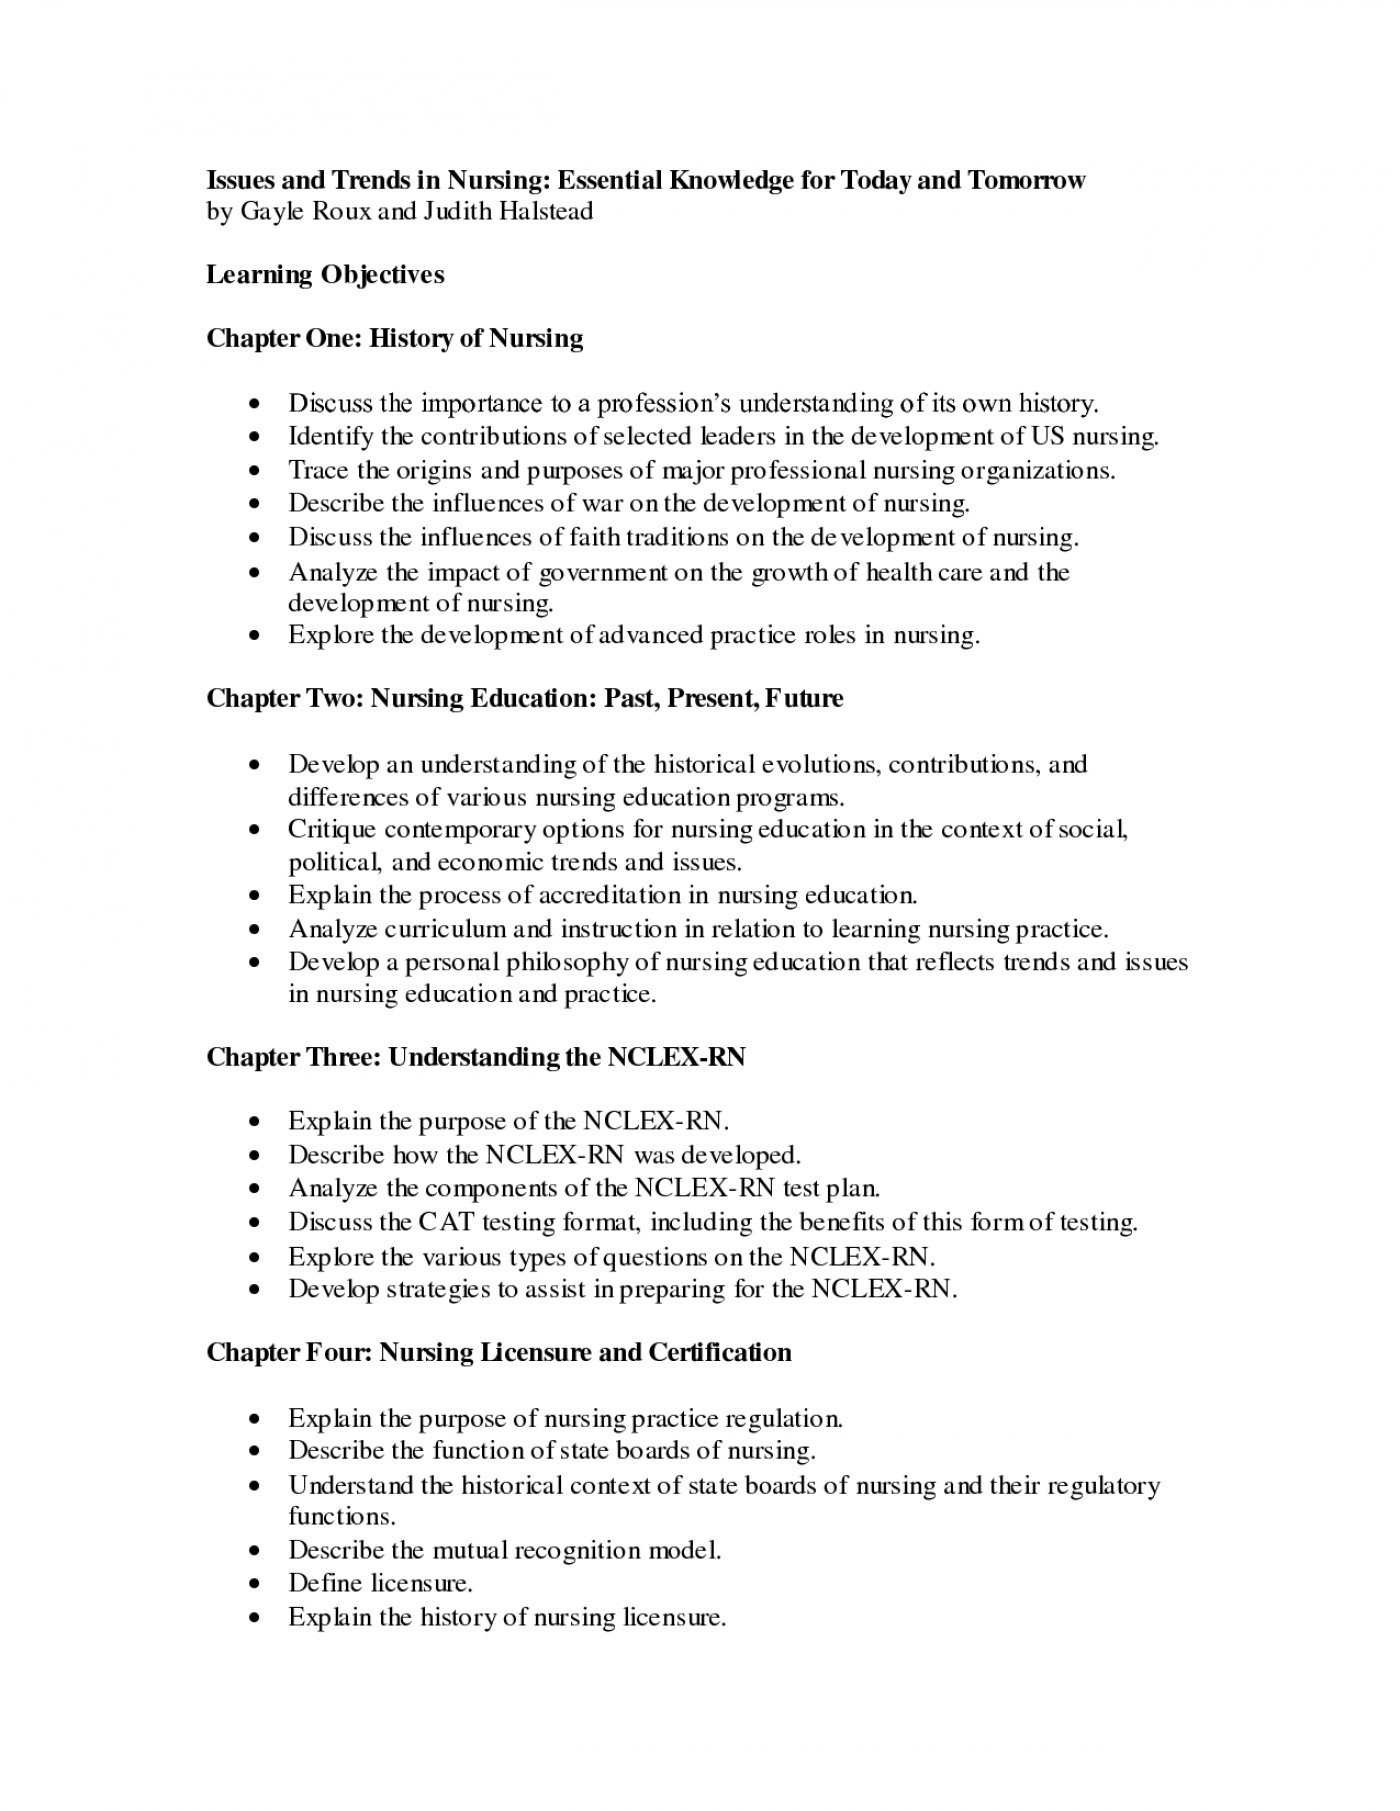 001 Research Paper Unusual Formatting Software In Chicago Style Format Apa 1400